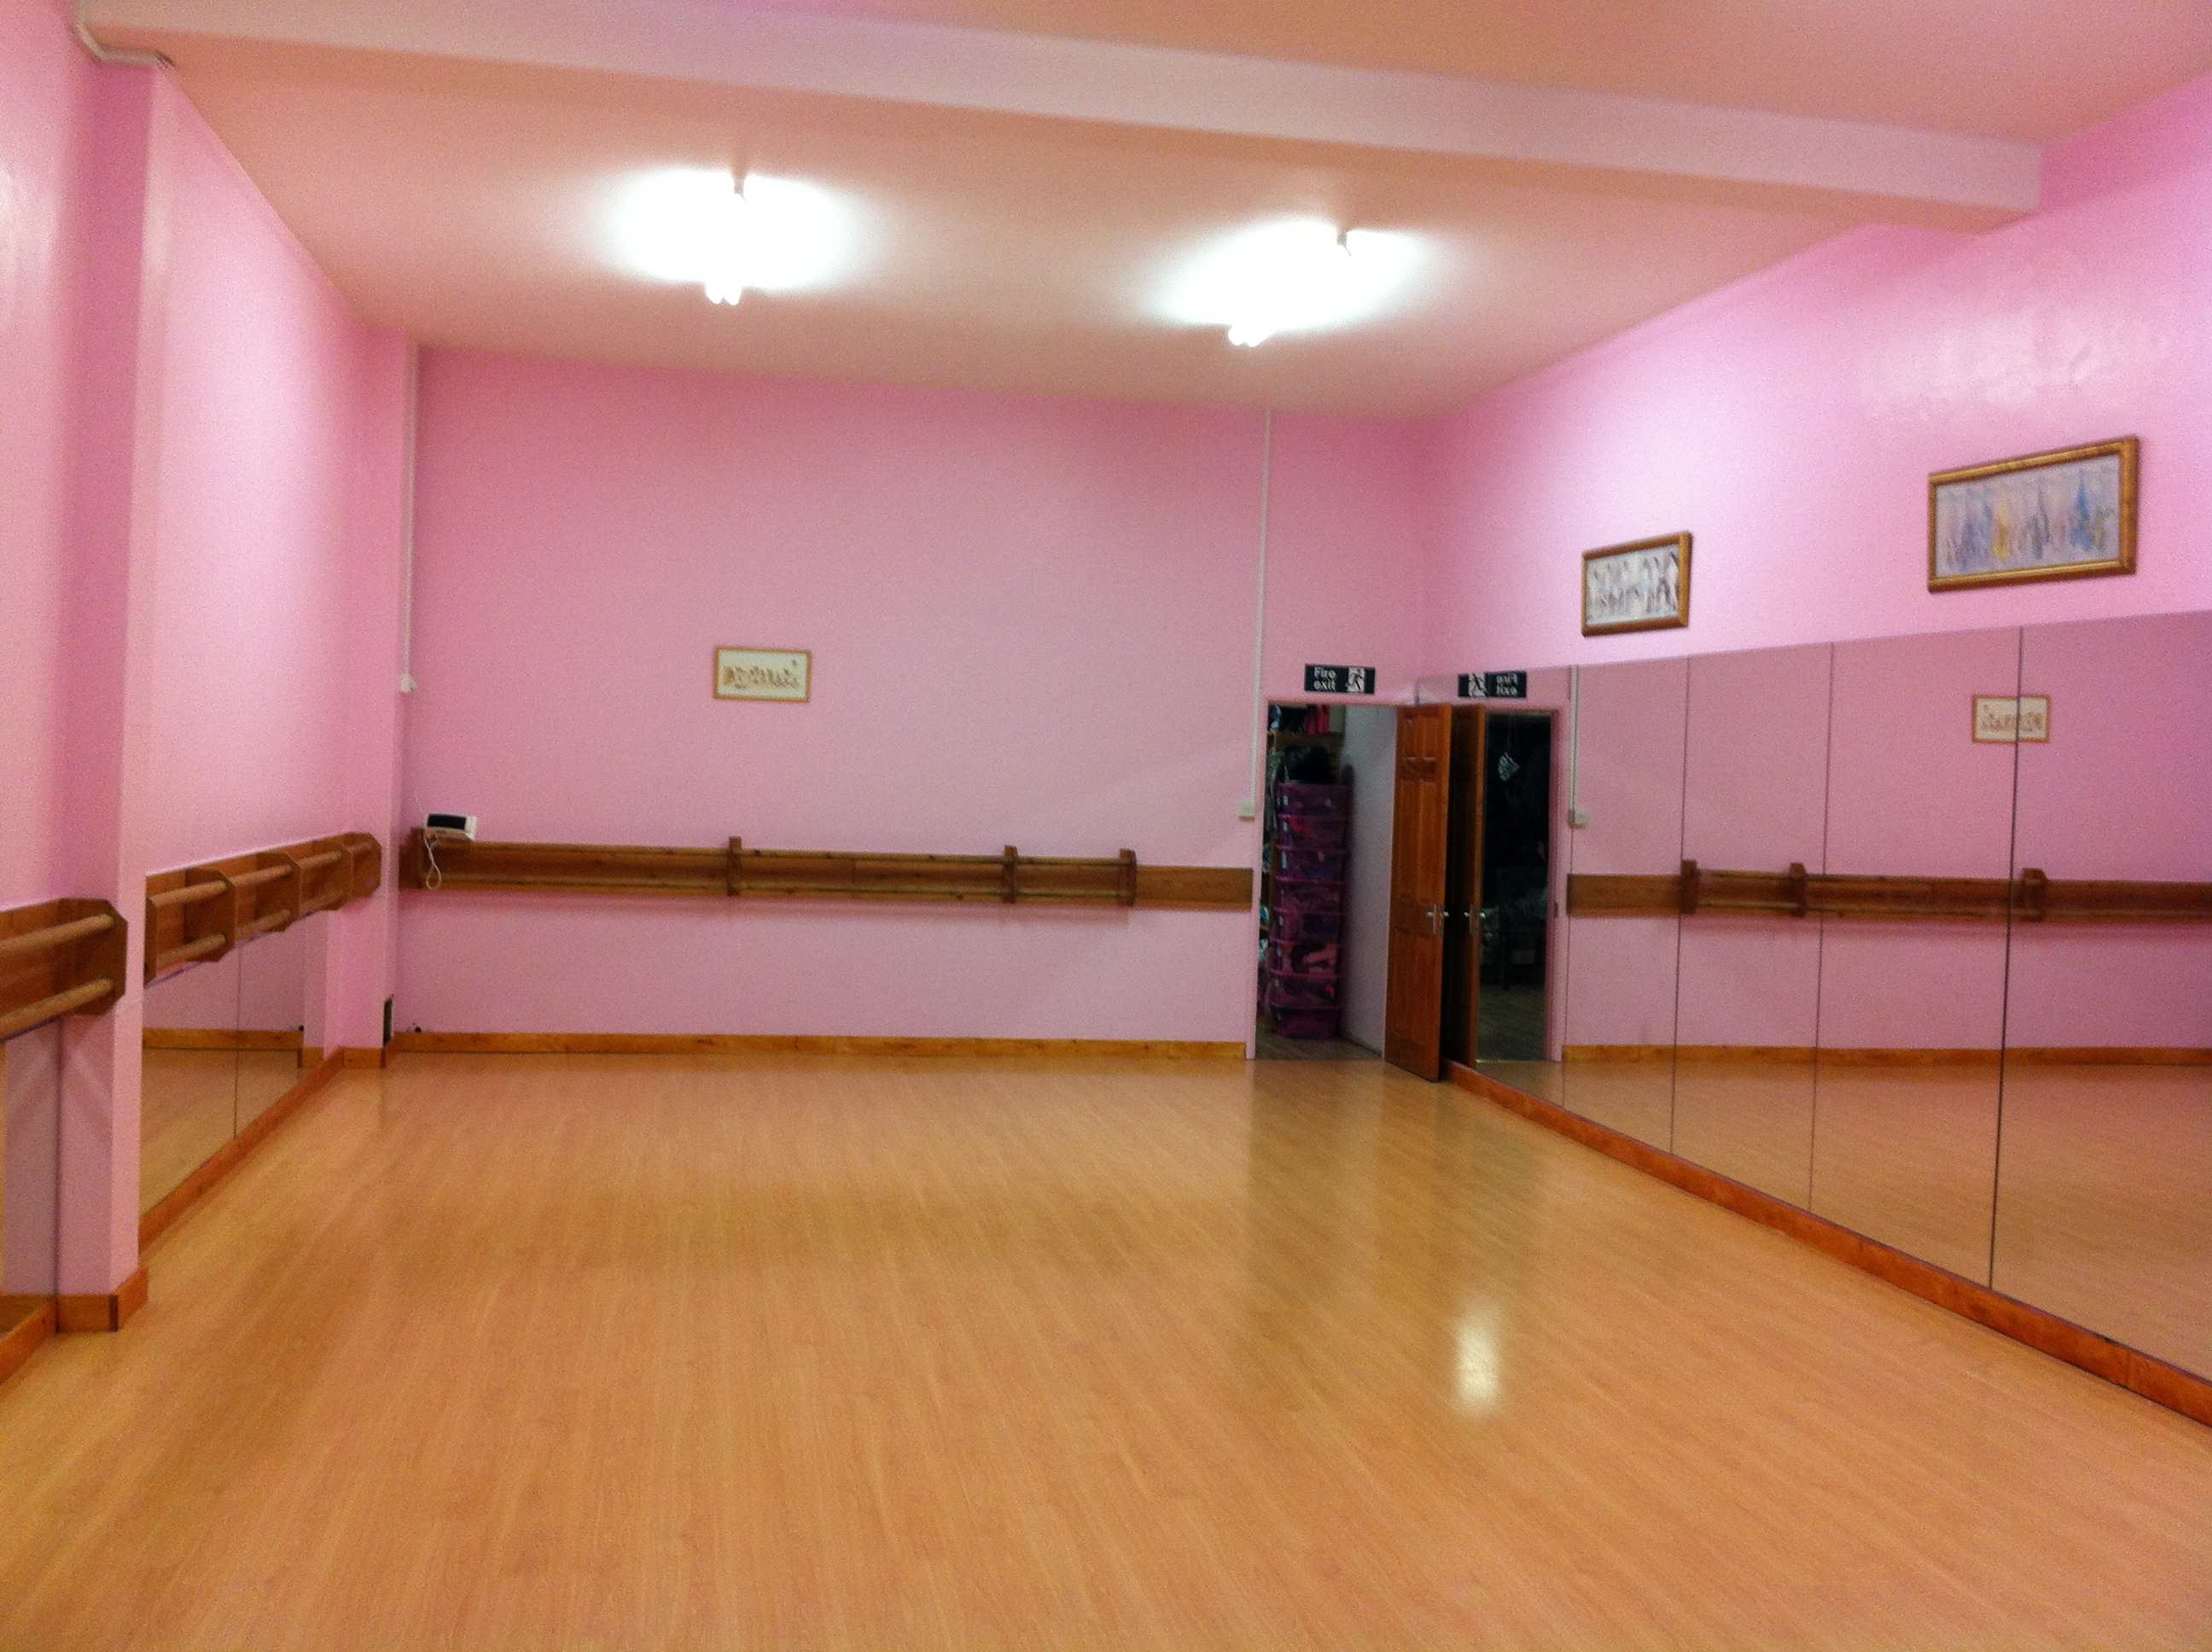 Suzanne s school of dance for Porte arts and dance studio